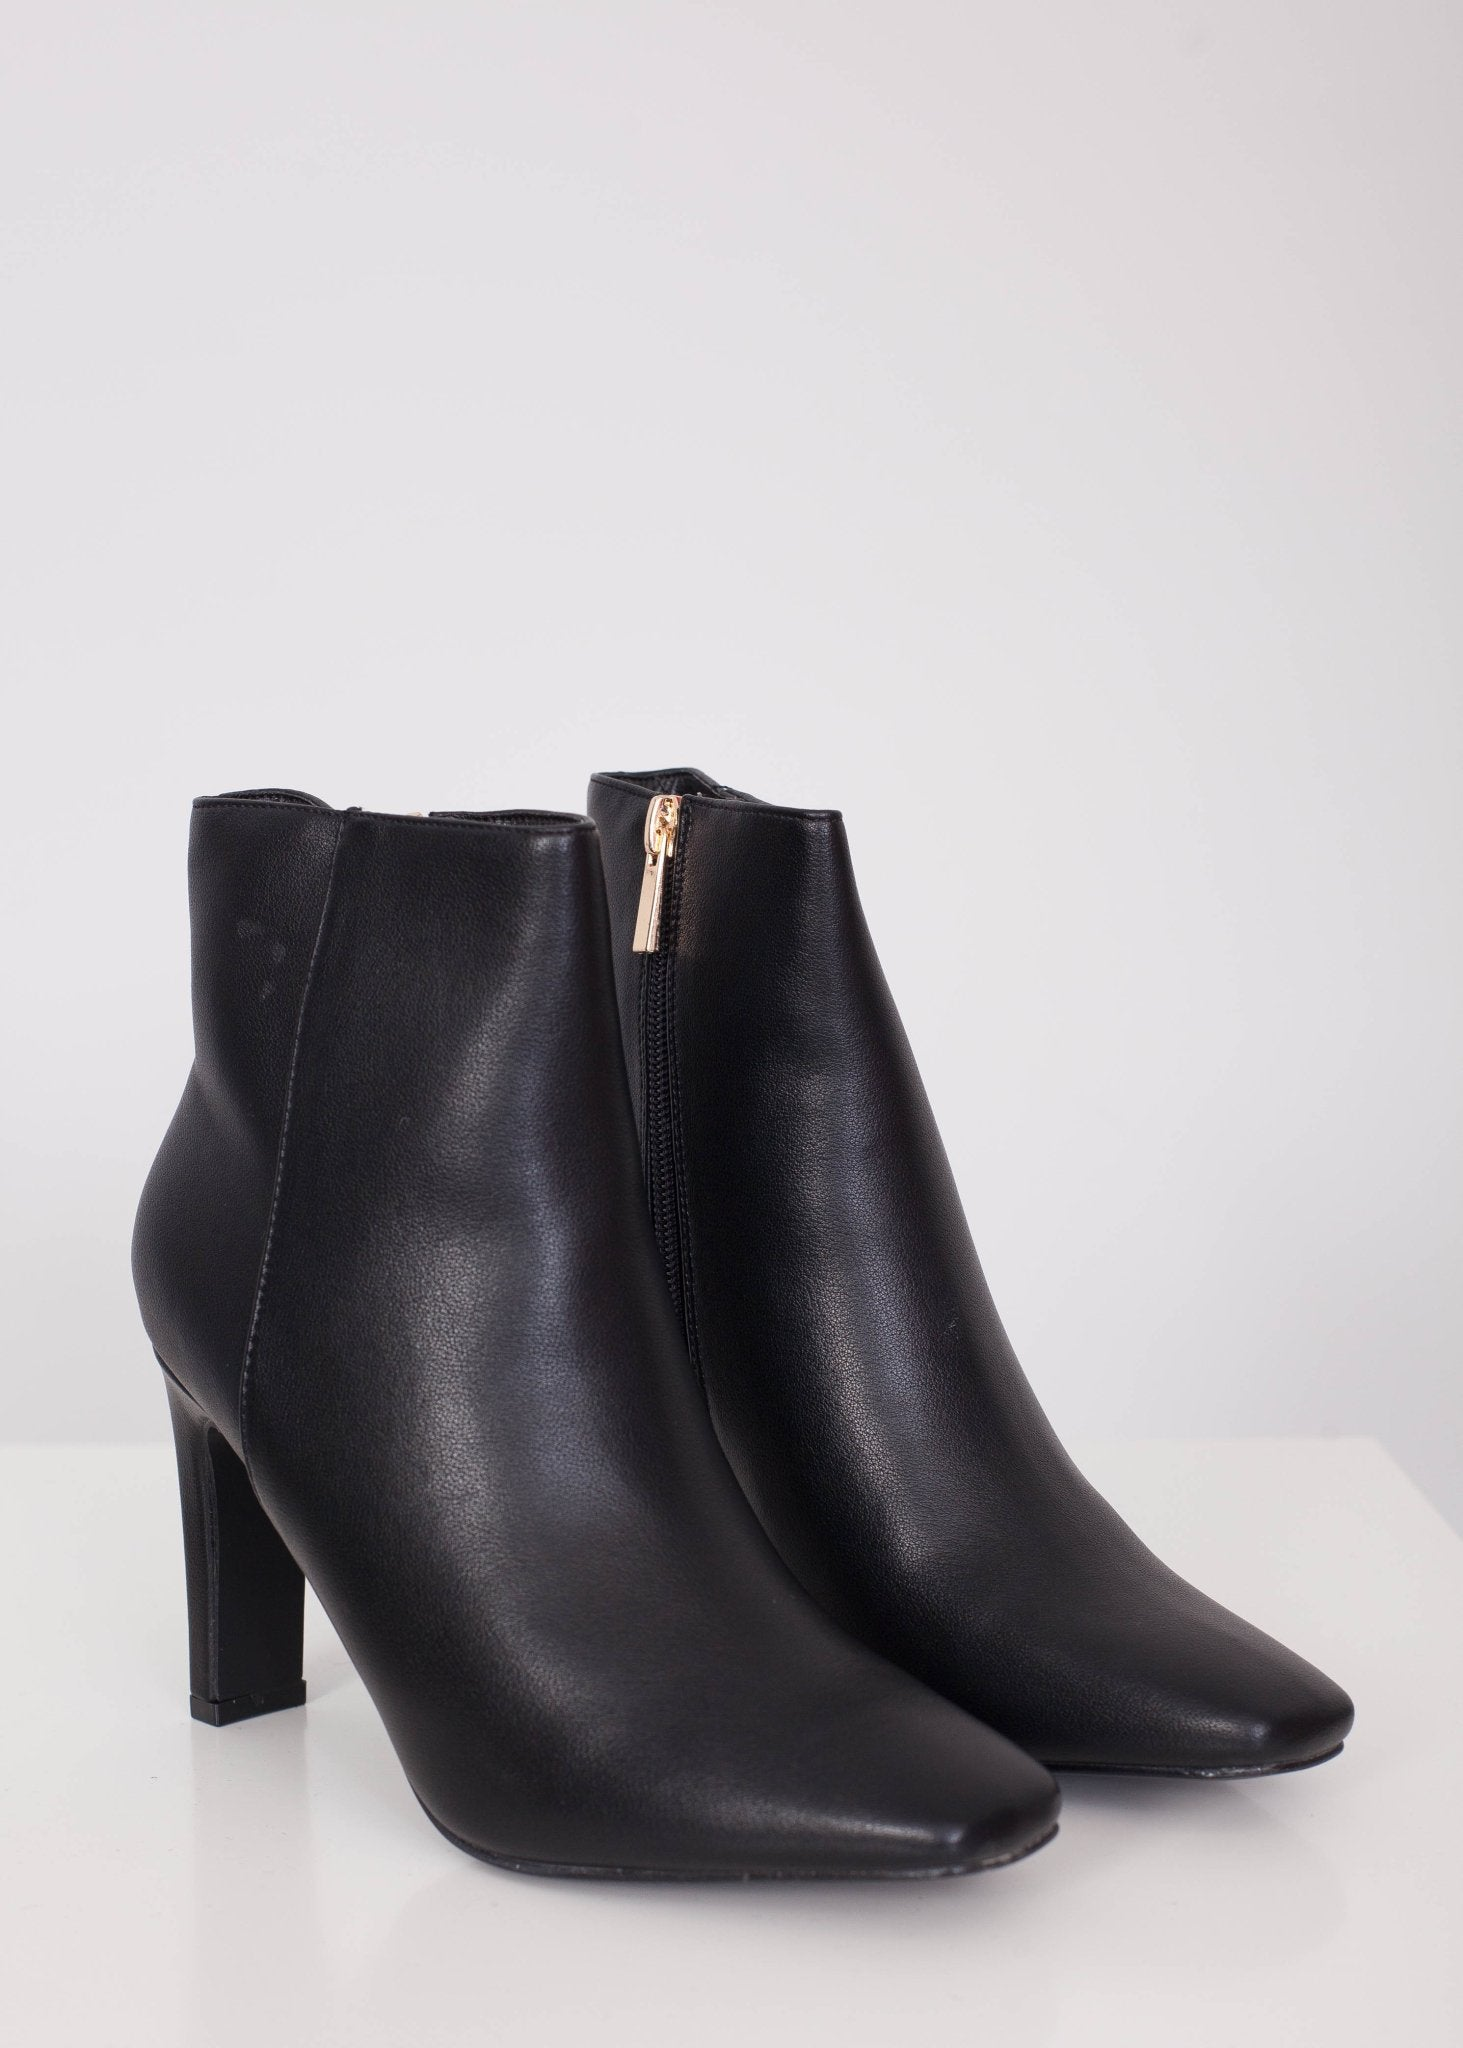 Priya Black Square Toe Bootie - The Walk in Wardrobe